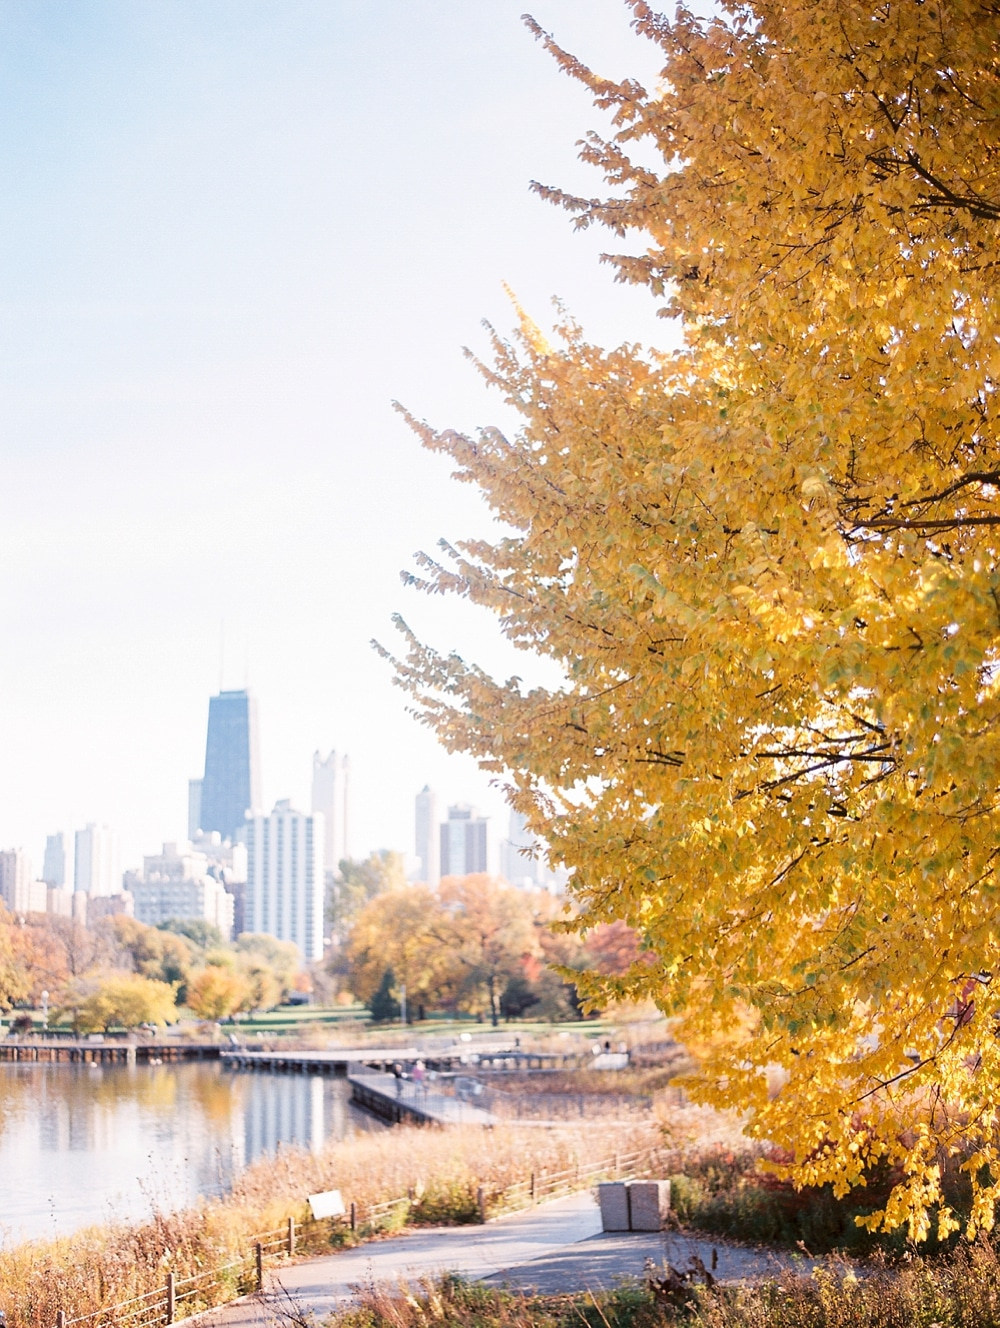 Kristin-La-Voie-Photography-Chicago-Wedding-Photographer-South-Pond-Dog-Engagement-Lincoln-Park-38